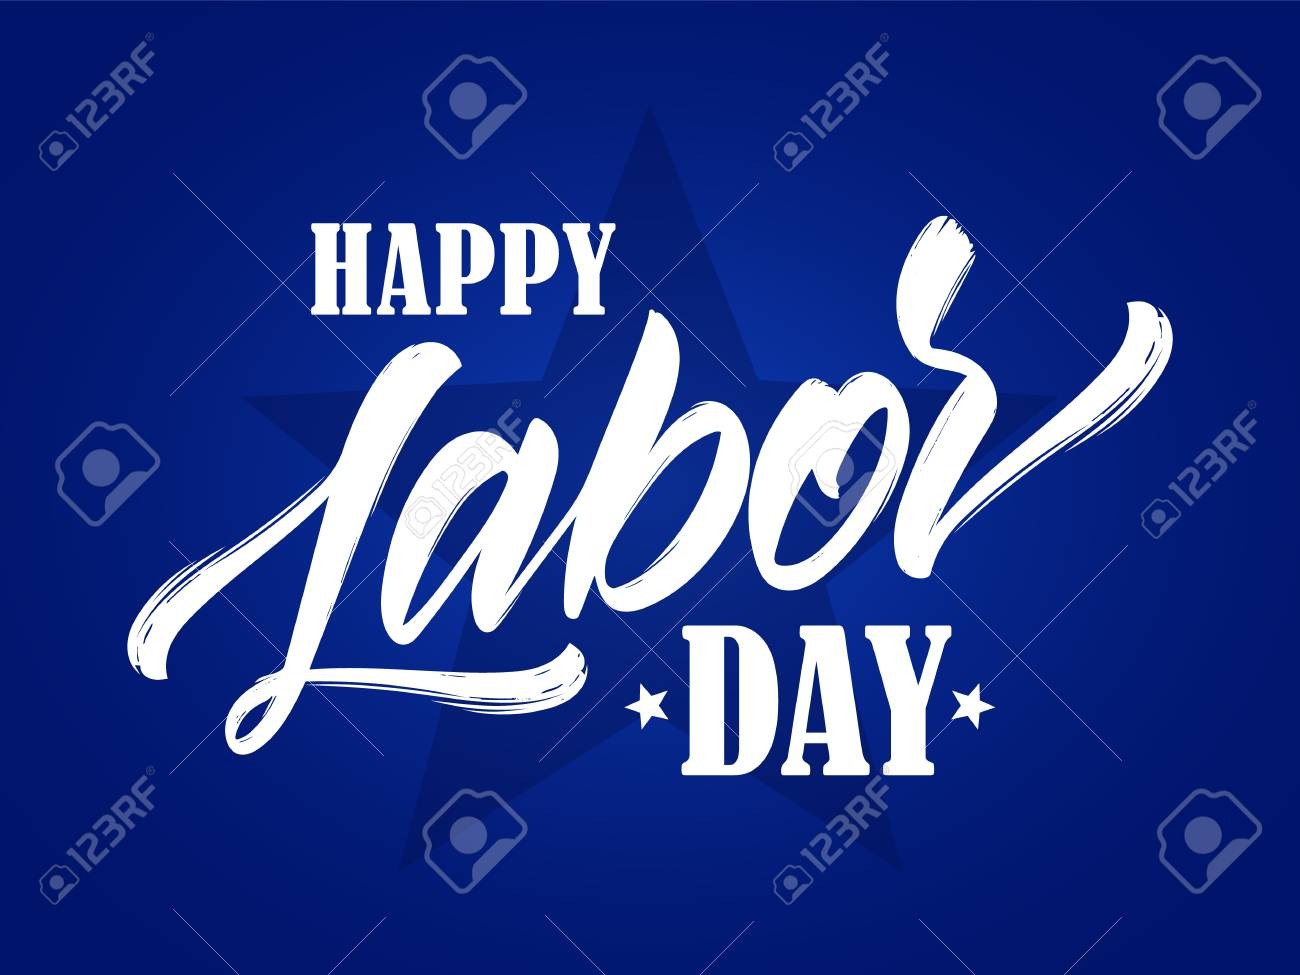 Vector illustration: Lettering composition of Happy Labor Day on blue background. - 106641086